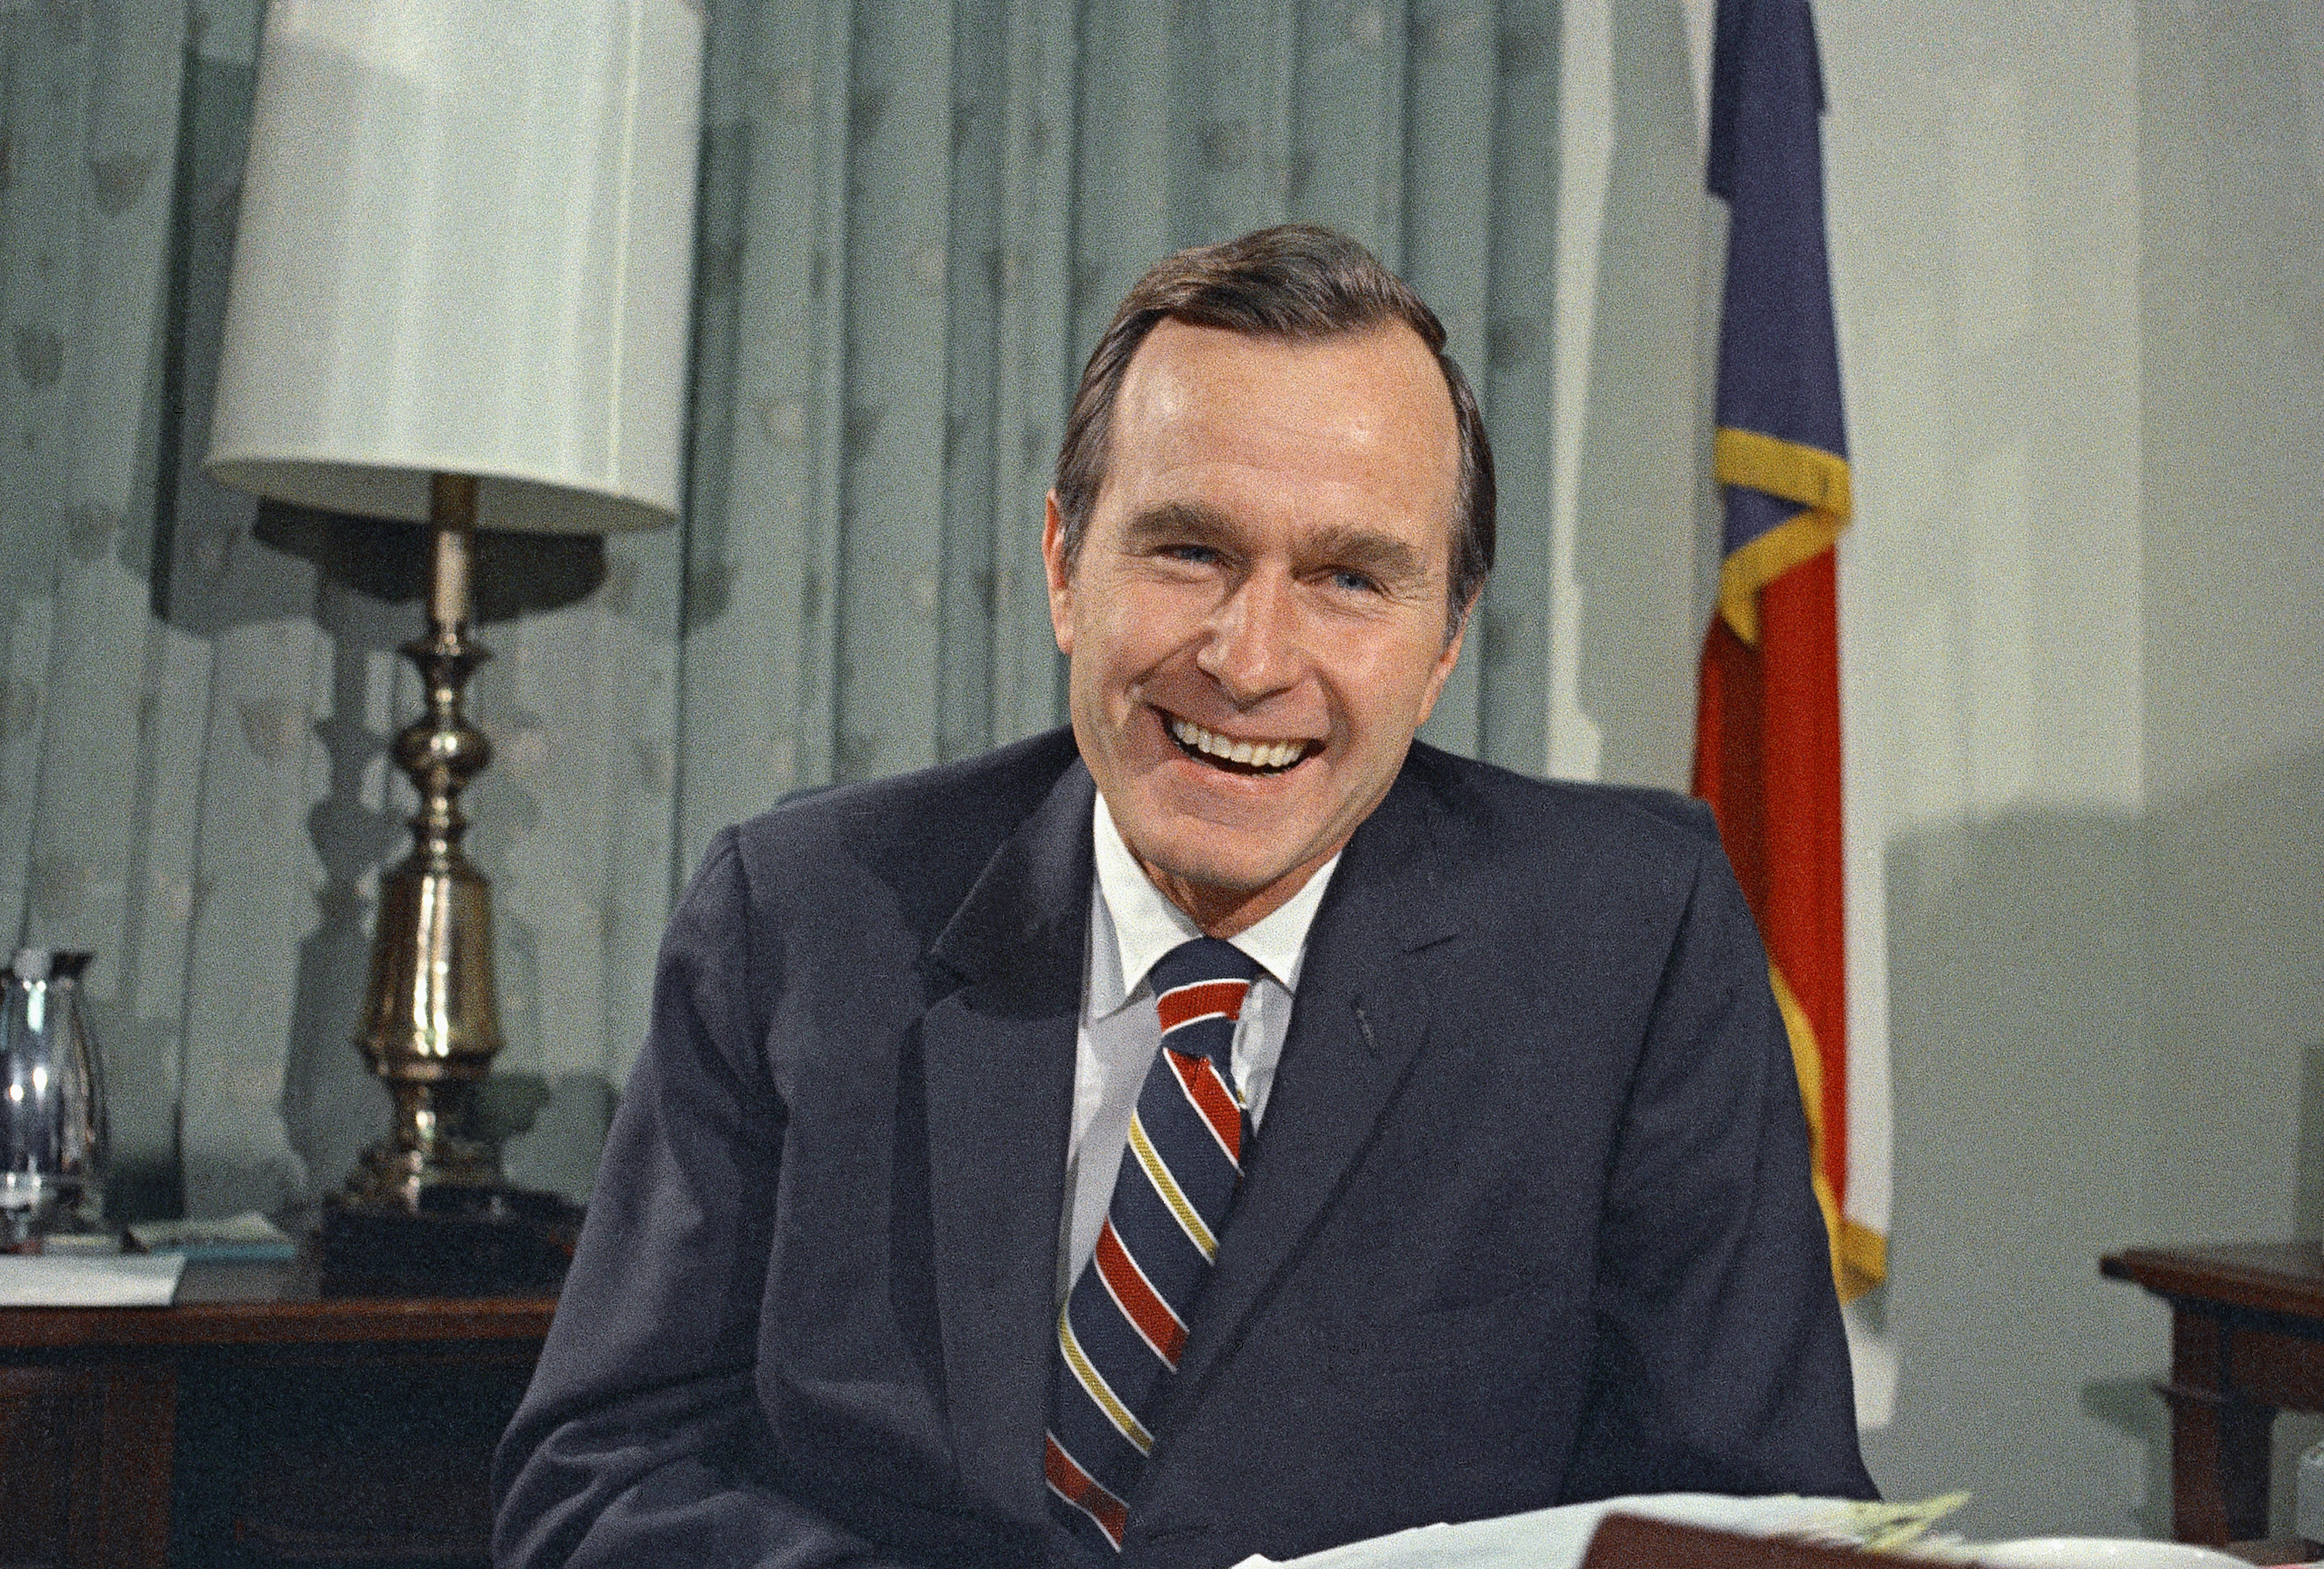 George H. Bush. (AP Photo/John Duricka, File)